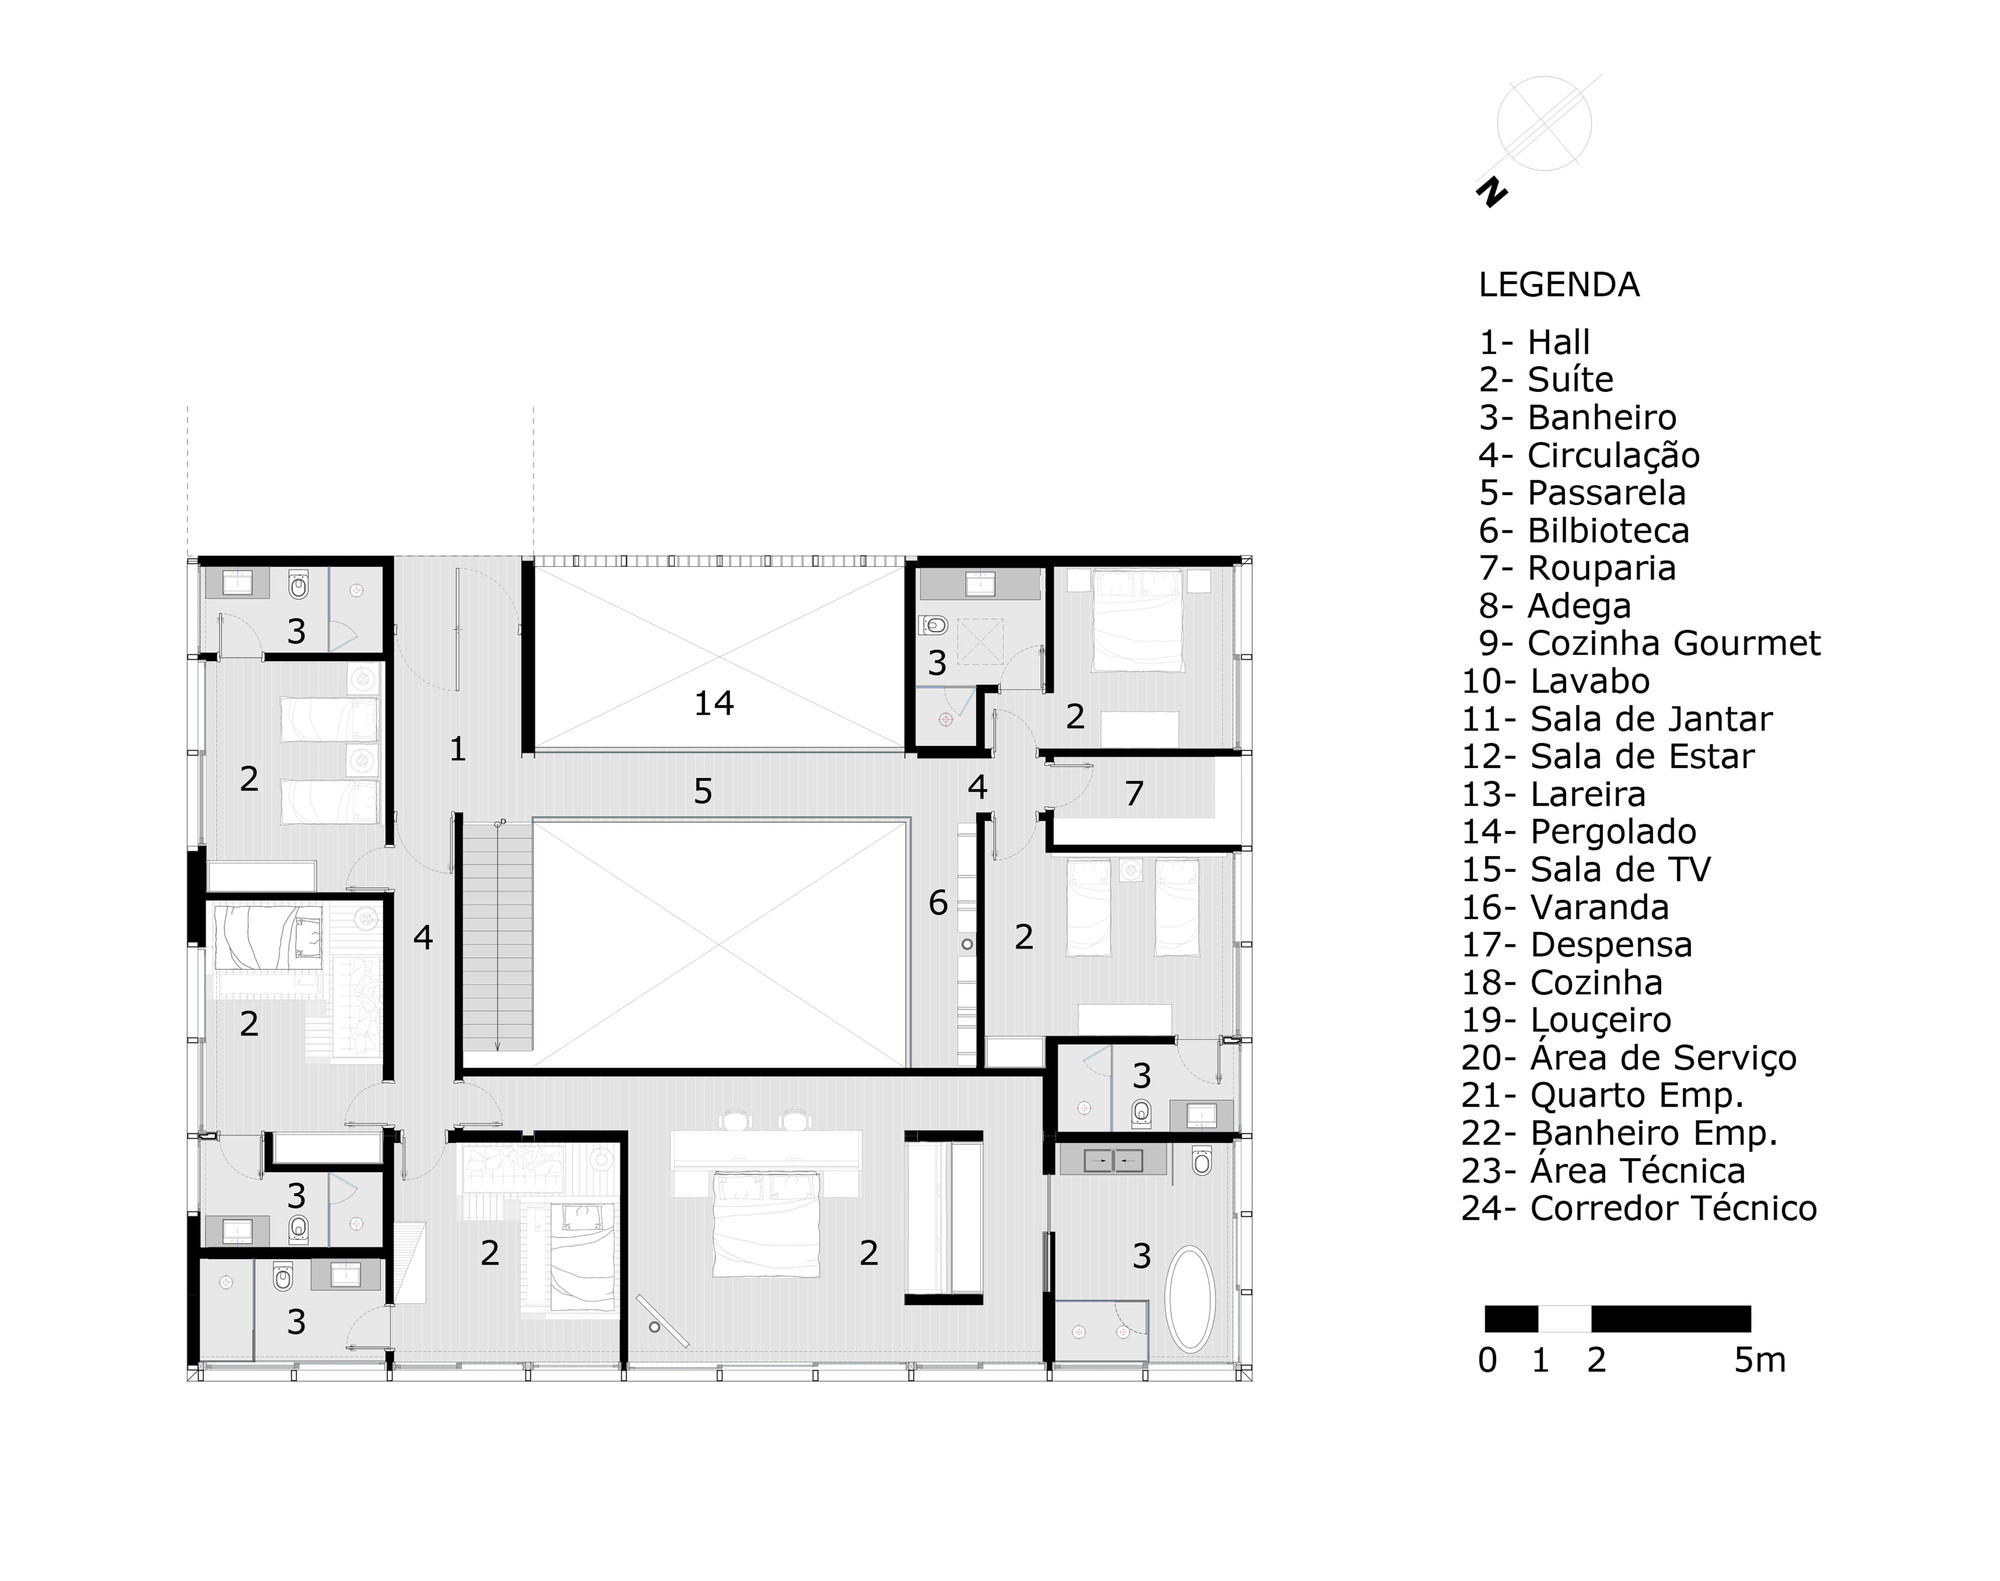 Gallery of jg house mpgarquitetura 12 for Copying house plans